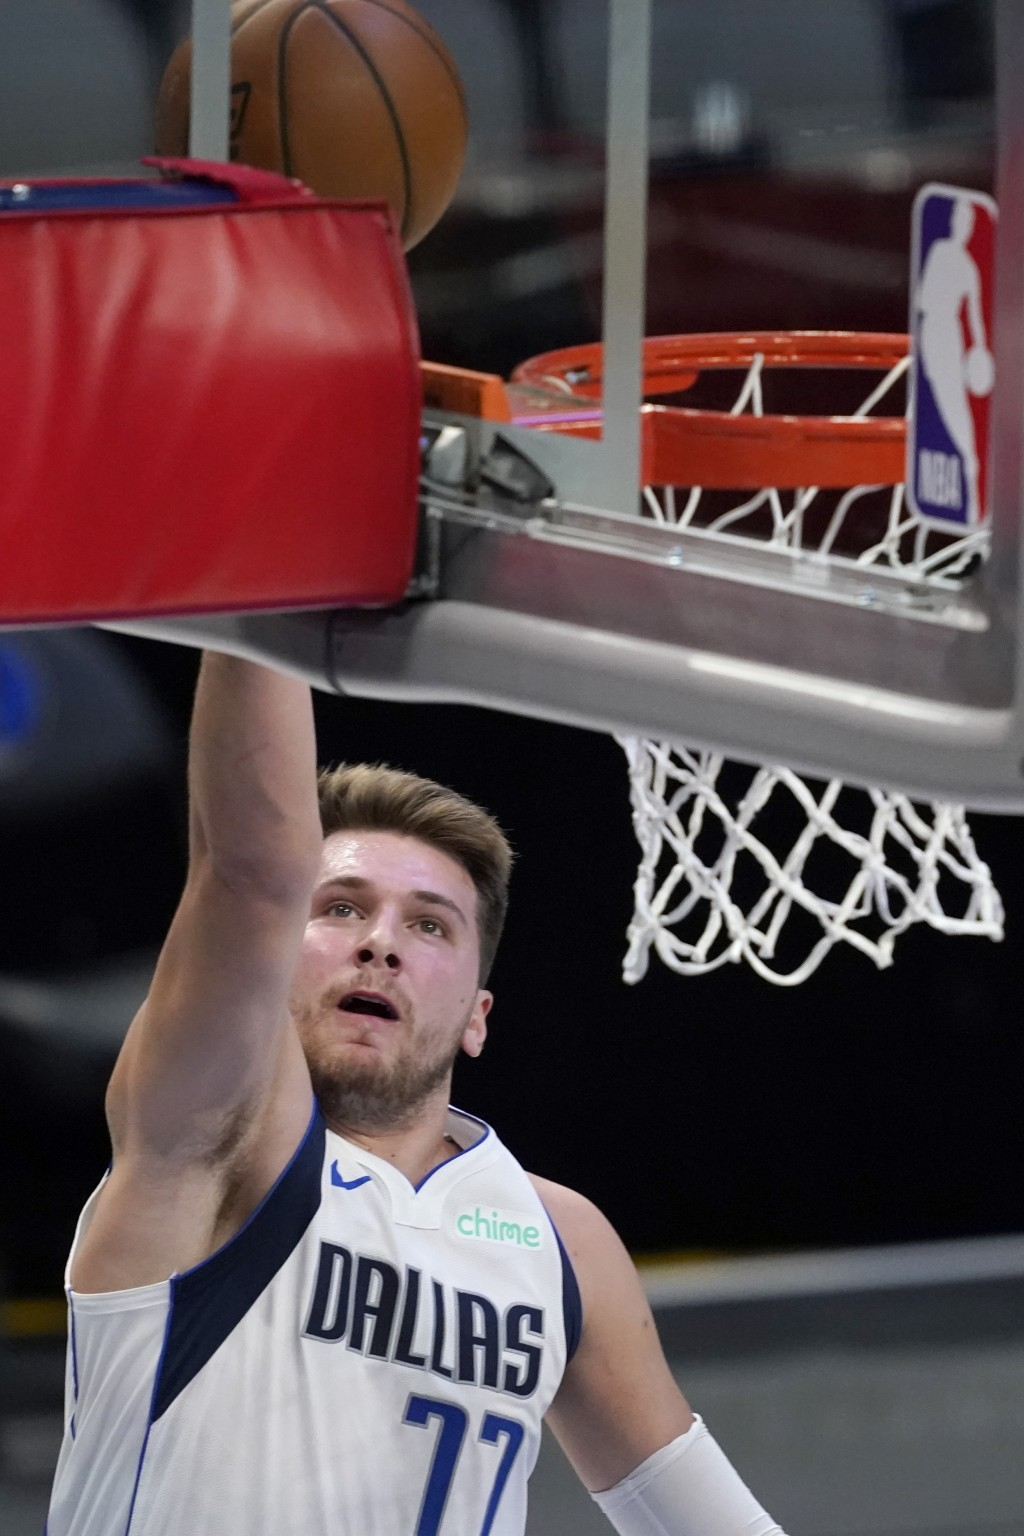 Dallas Mavericks guard Luka Doncic goes up for a shot in the first half of an NBA preseason basketball game against the Minnesota Timberwolves in Dall...